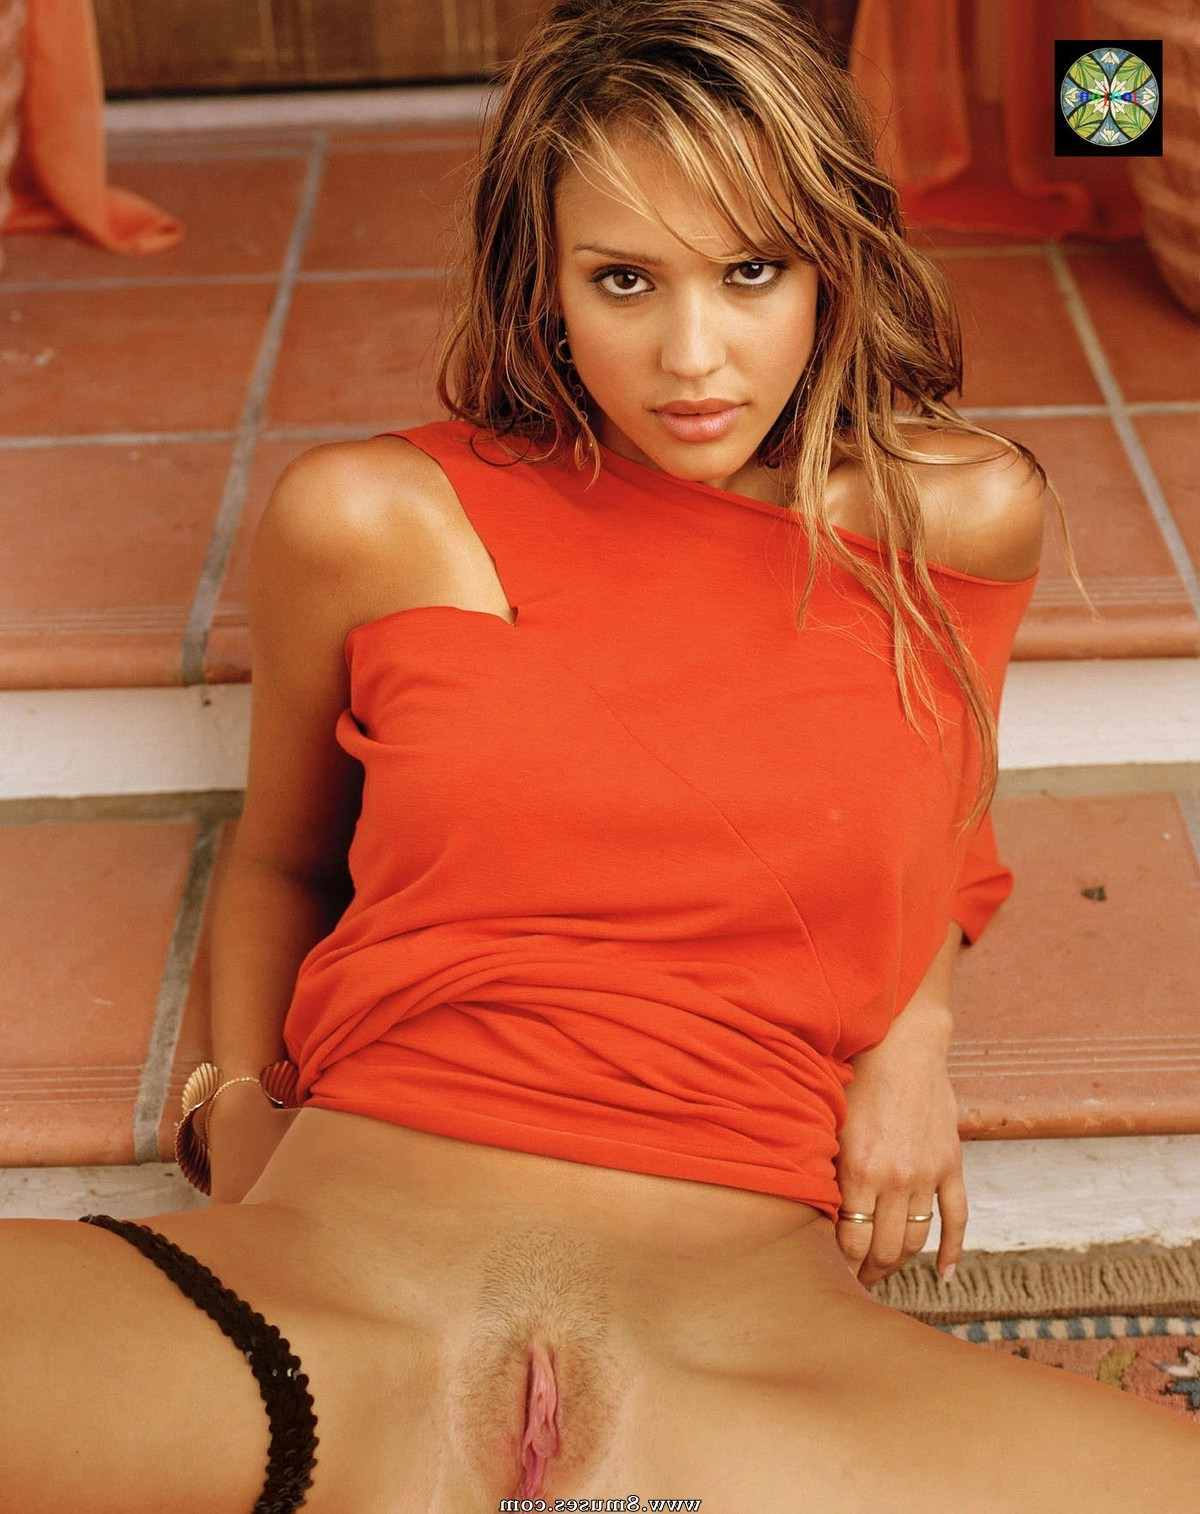 Fake-Celebrities-Sex-Pictures/Jessica-Alba Jessica_Alba__8muses_-_Sex_and_Porn_Comics_257.jpg